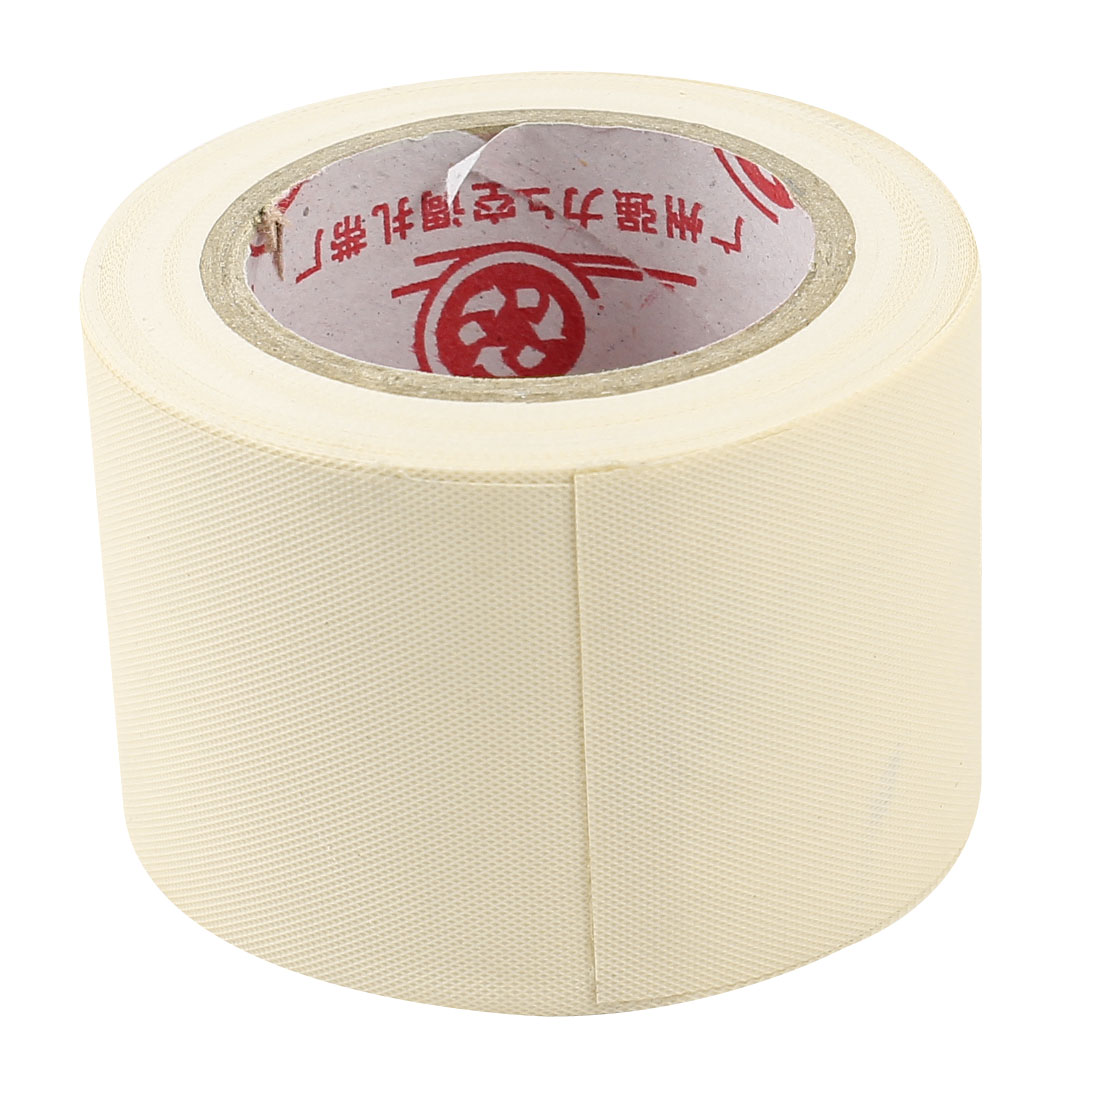 4.3cm x 6.4cm Ash Gray Hose Wrapping Tape Roller for Air Conditioner